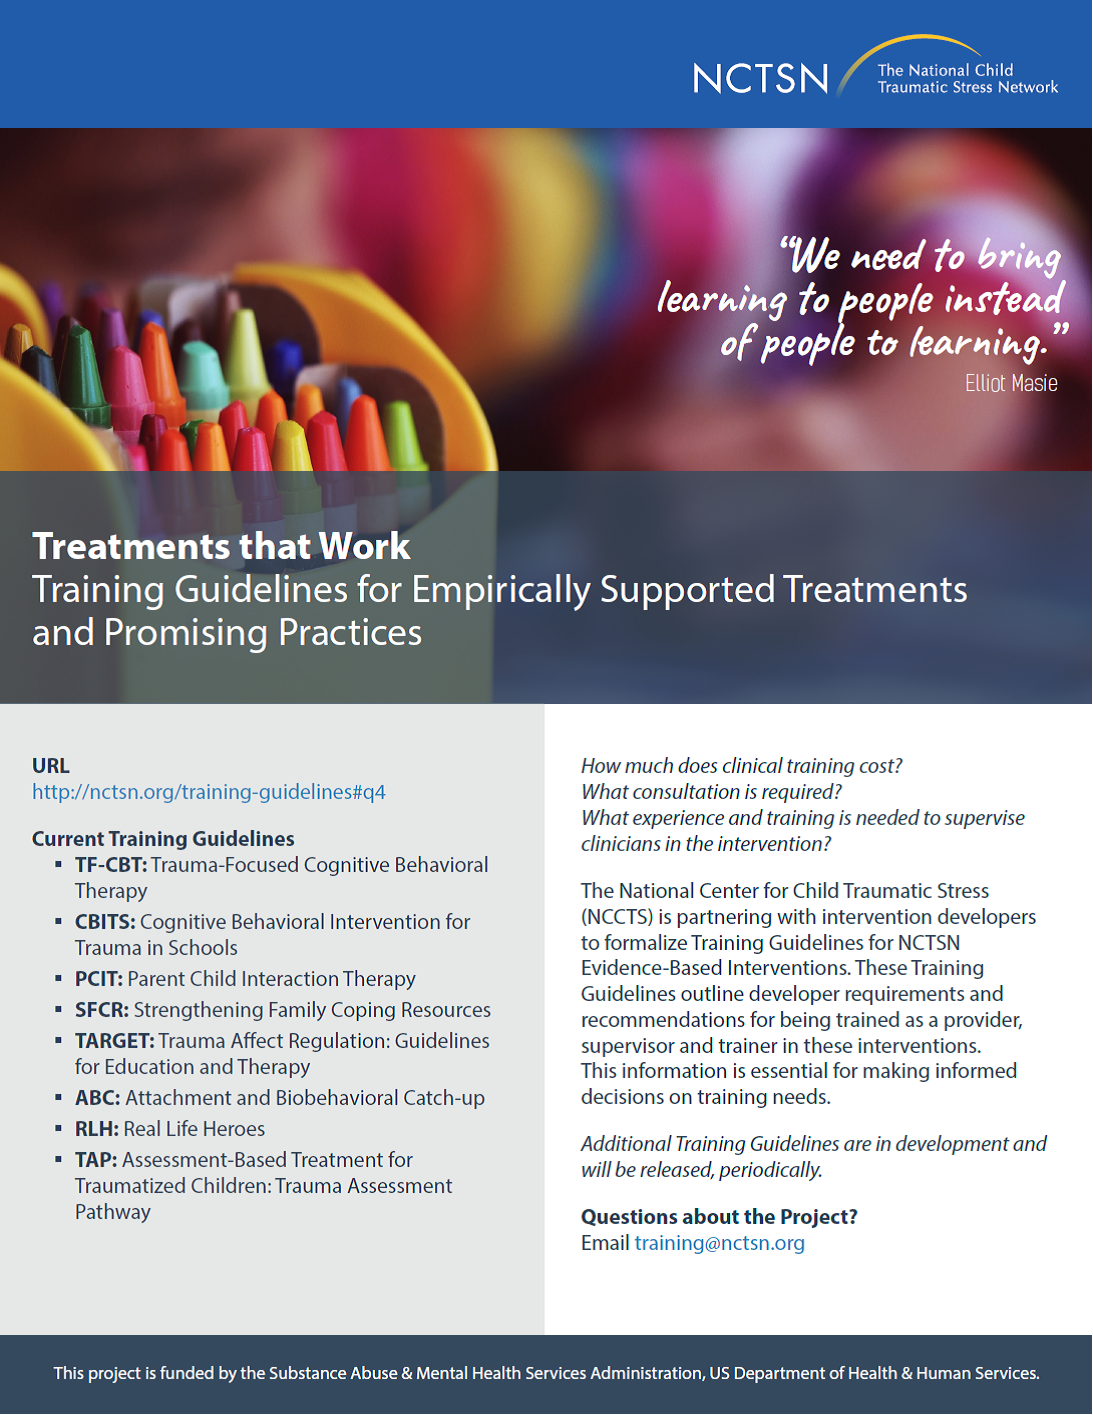 NEW TRAINING GUIDELINES for ABC (Attachment and Biiobehavioral Catch-up), RLH (Real Life Heroes) and TAP (Assessment-Based Treatment for Traumatized Children: Trauma Assessment Pathway) Check them out by visiting http://nctsn.org/training-guidelines#q4